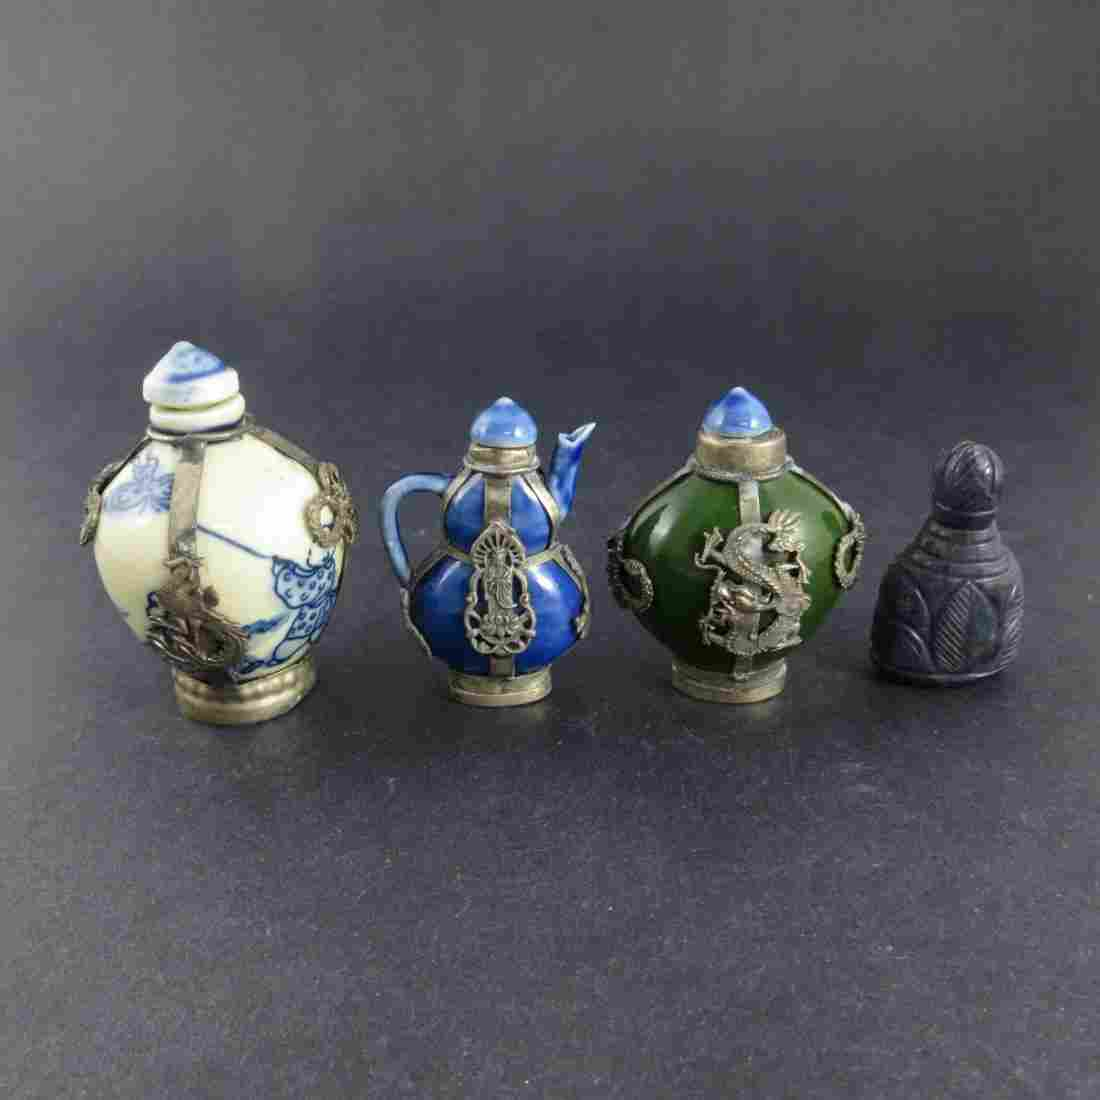 Four Chinese Qing Dynasty Snuffbottles